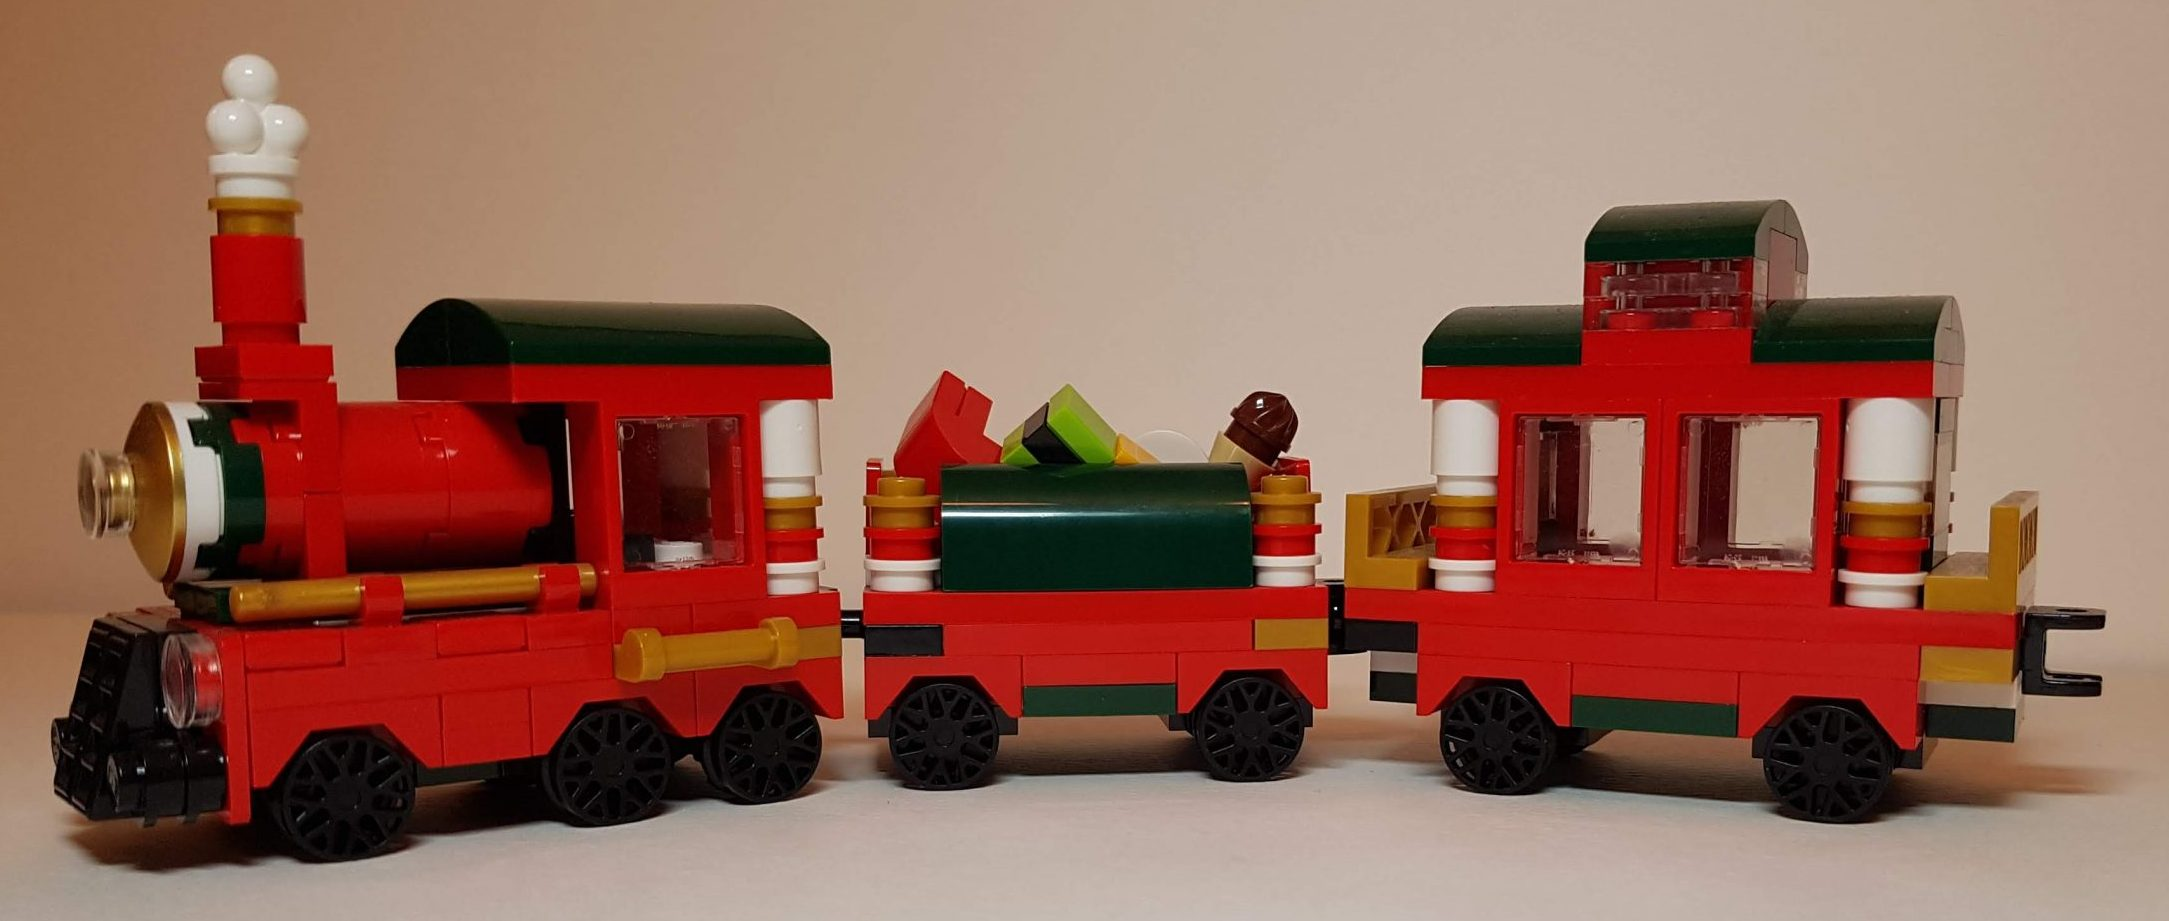 Mini Christmas Train (LEGO 40138) - Side View - Built By Wright Built